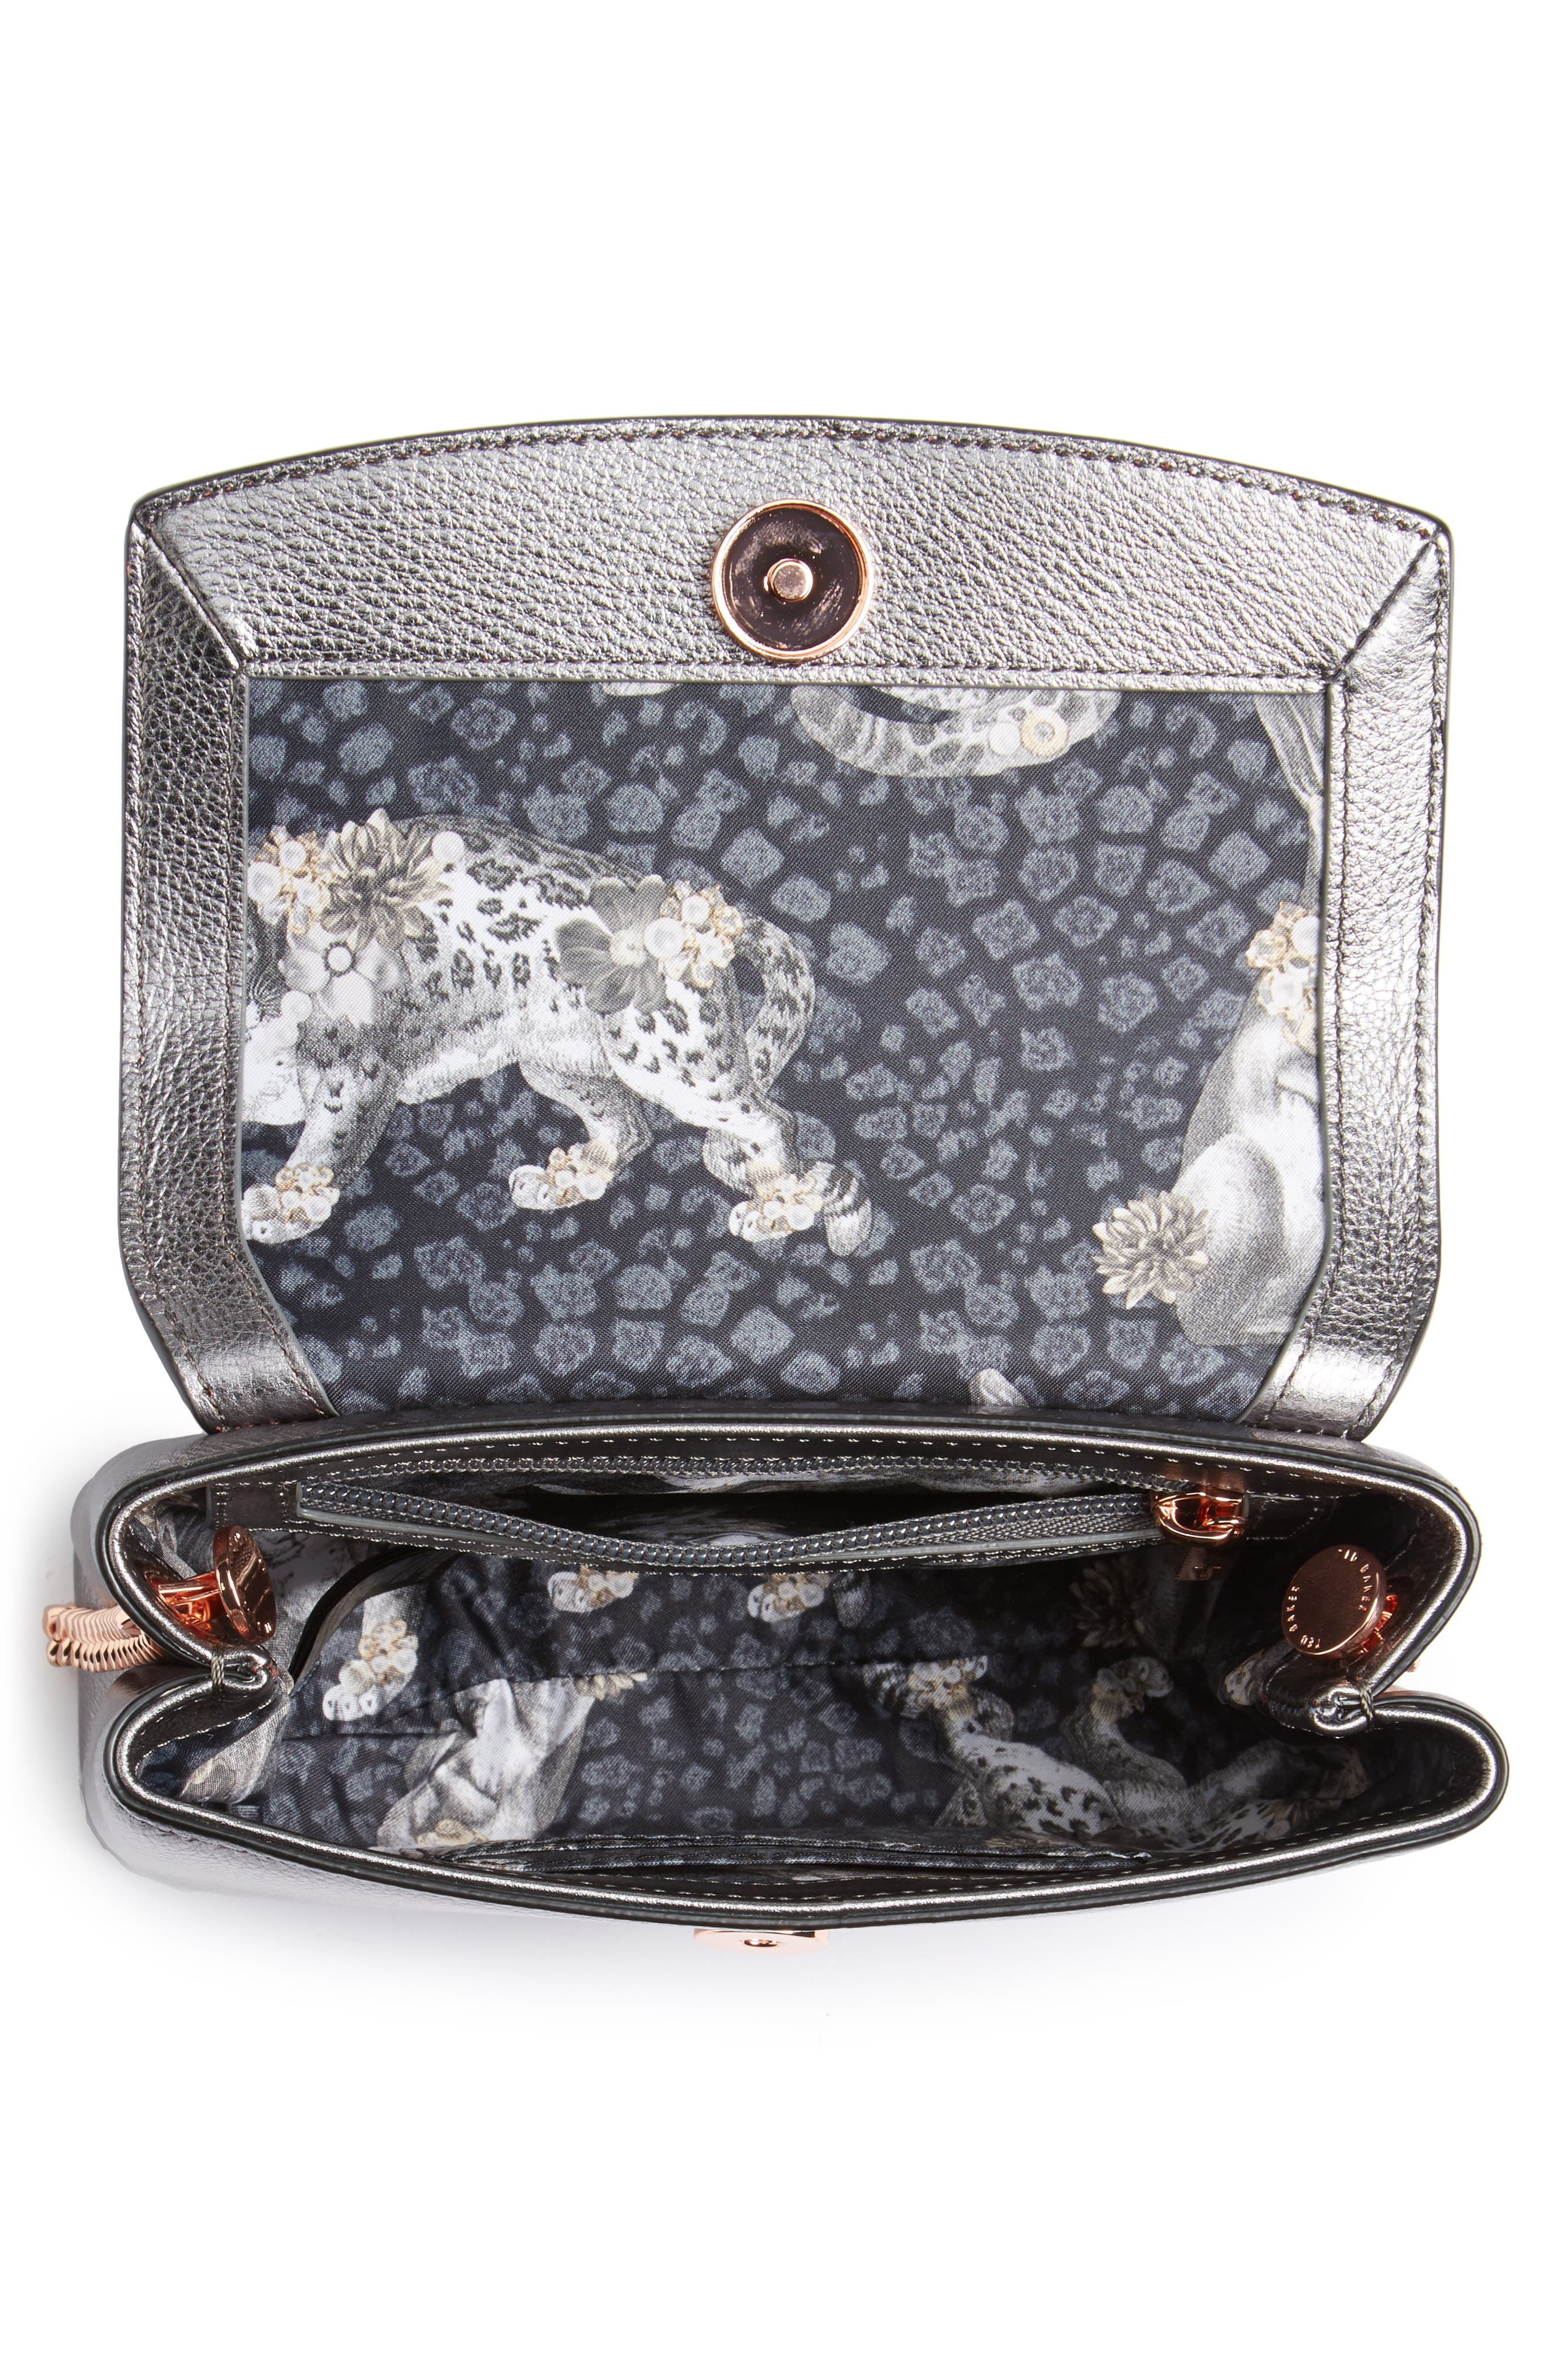 Lupiin Metallic Leather Crossbody Bag,                             Alternate thumbnail 4, color,                             022